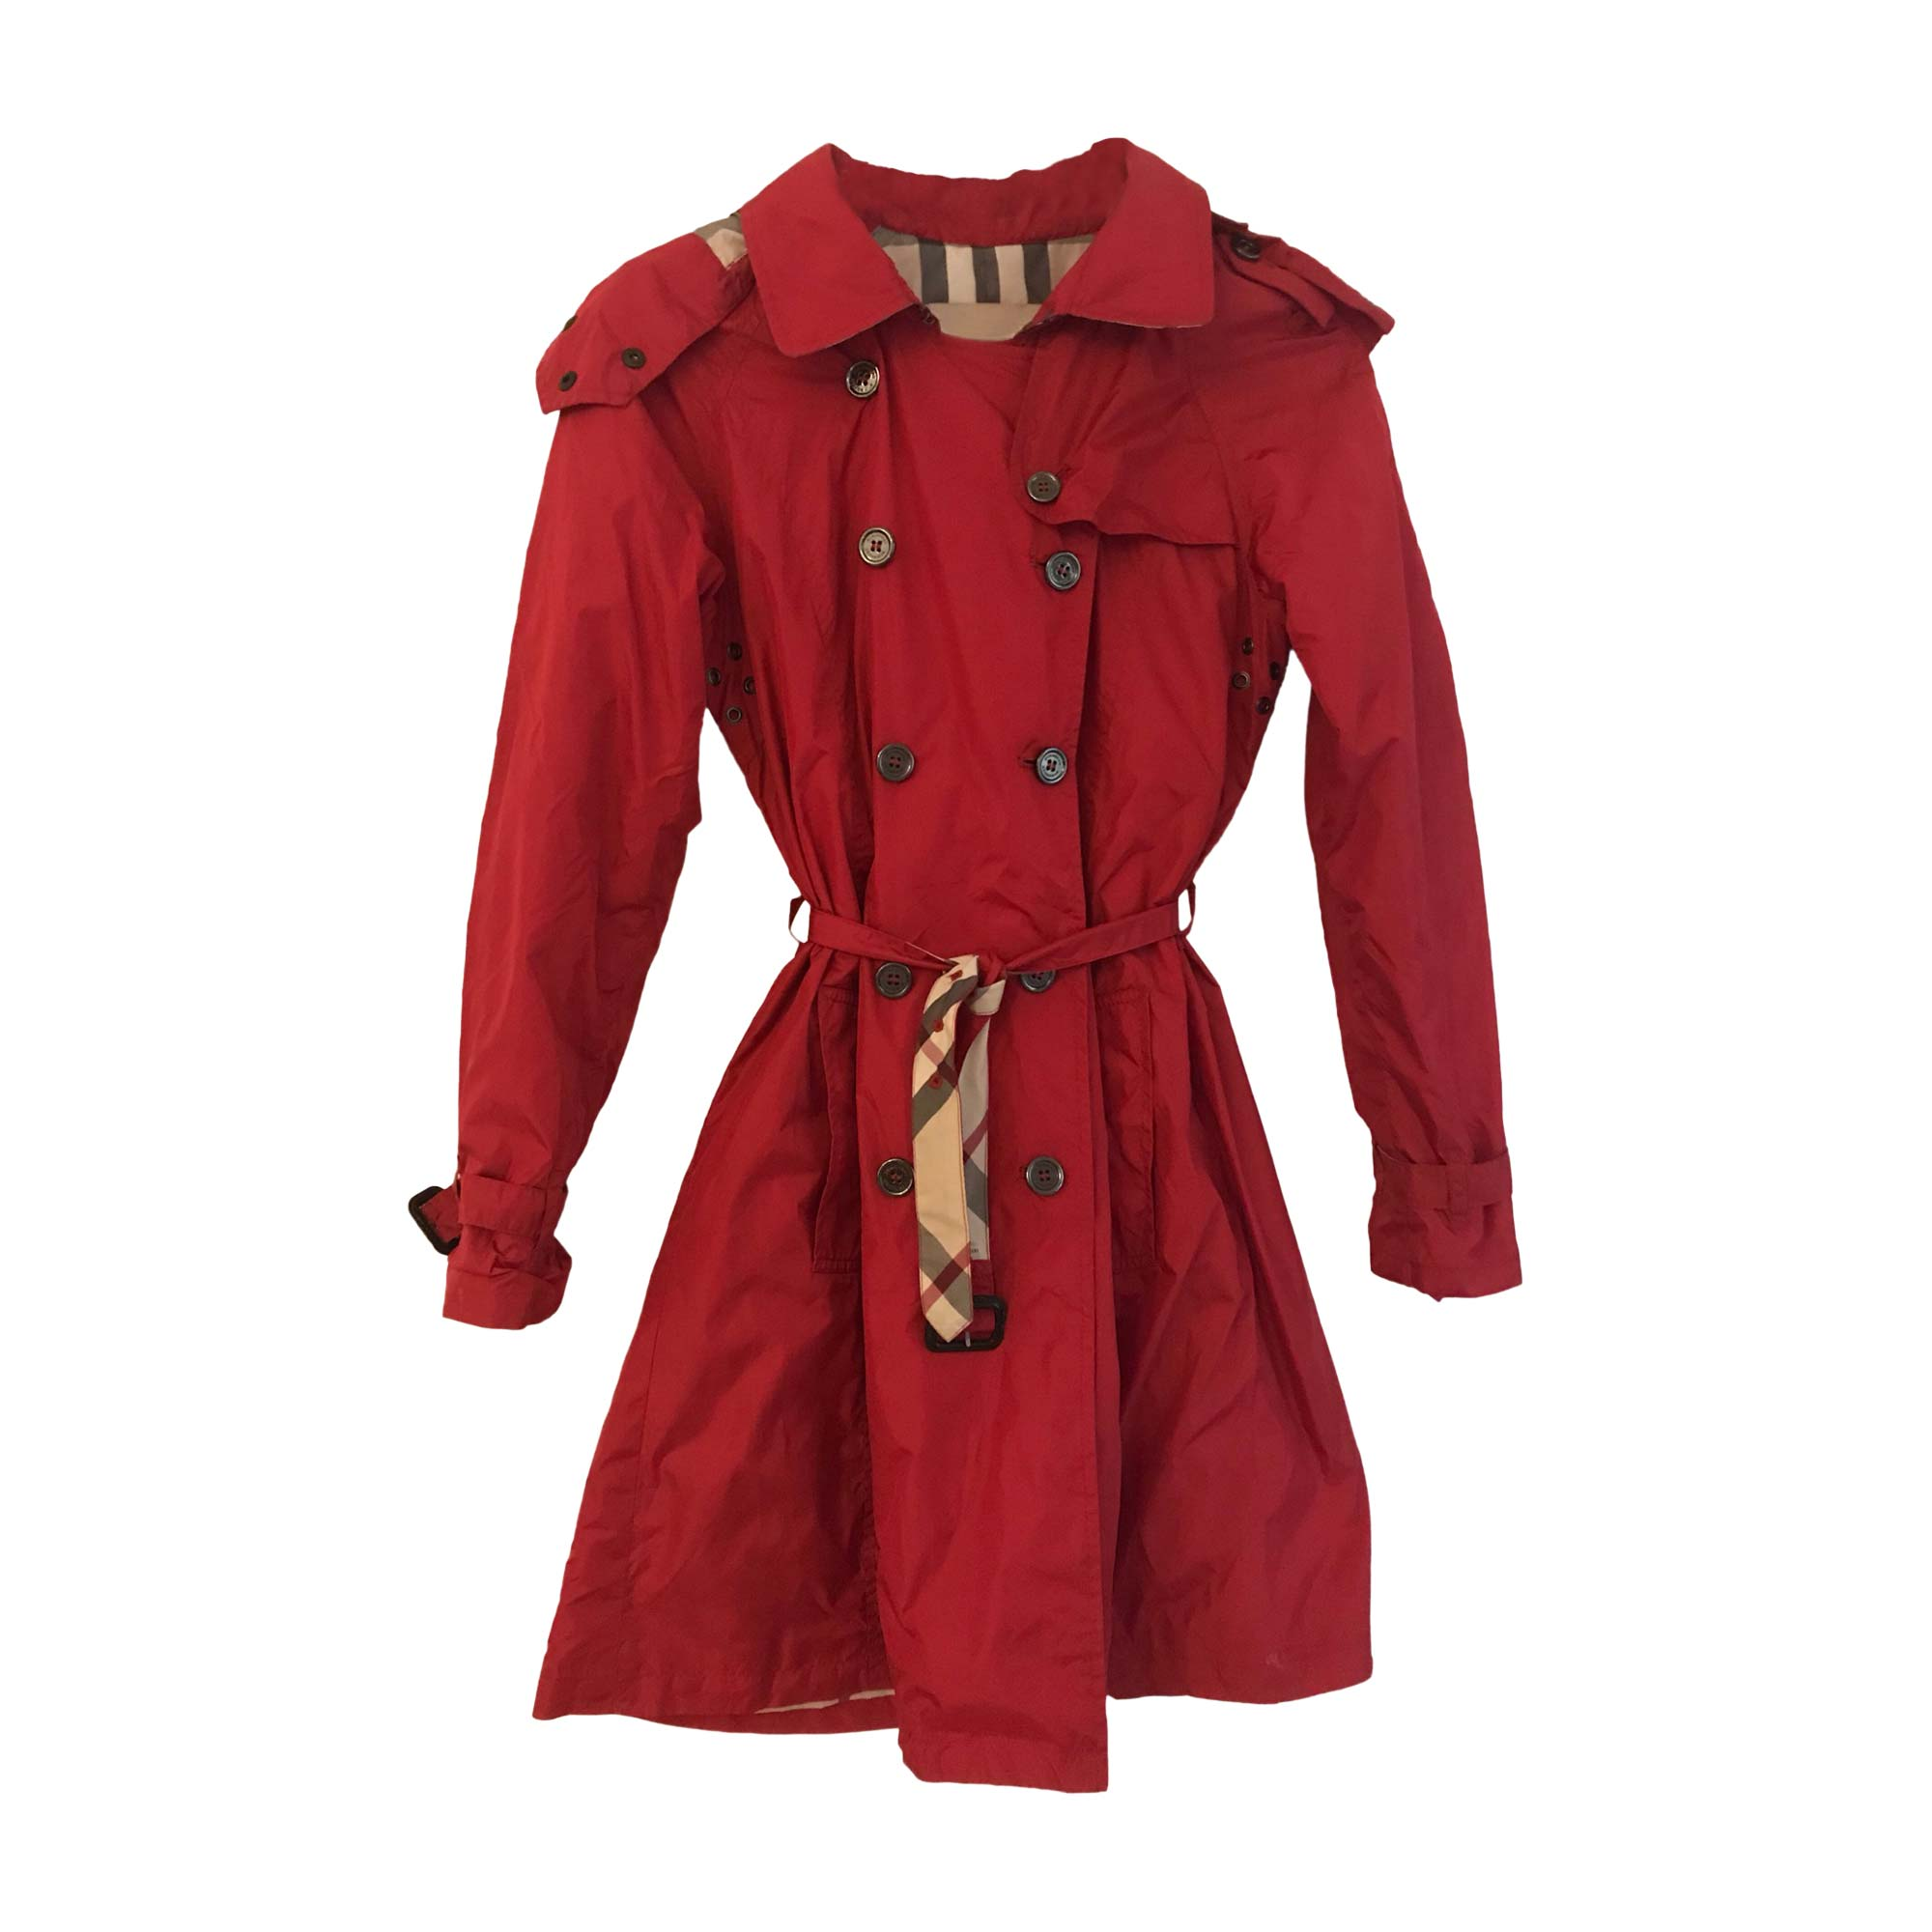 Imperméable, trench BURBERRY 34 (XS, T0) rouge 7983932